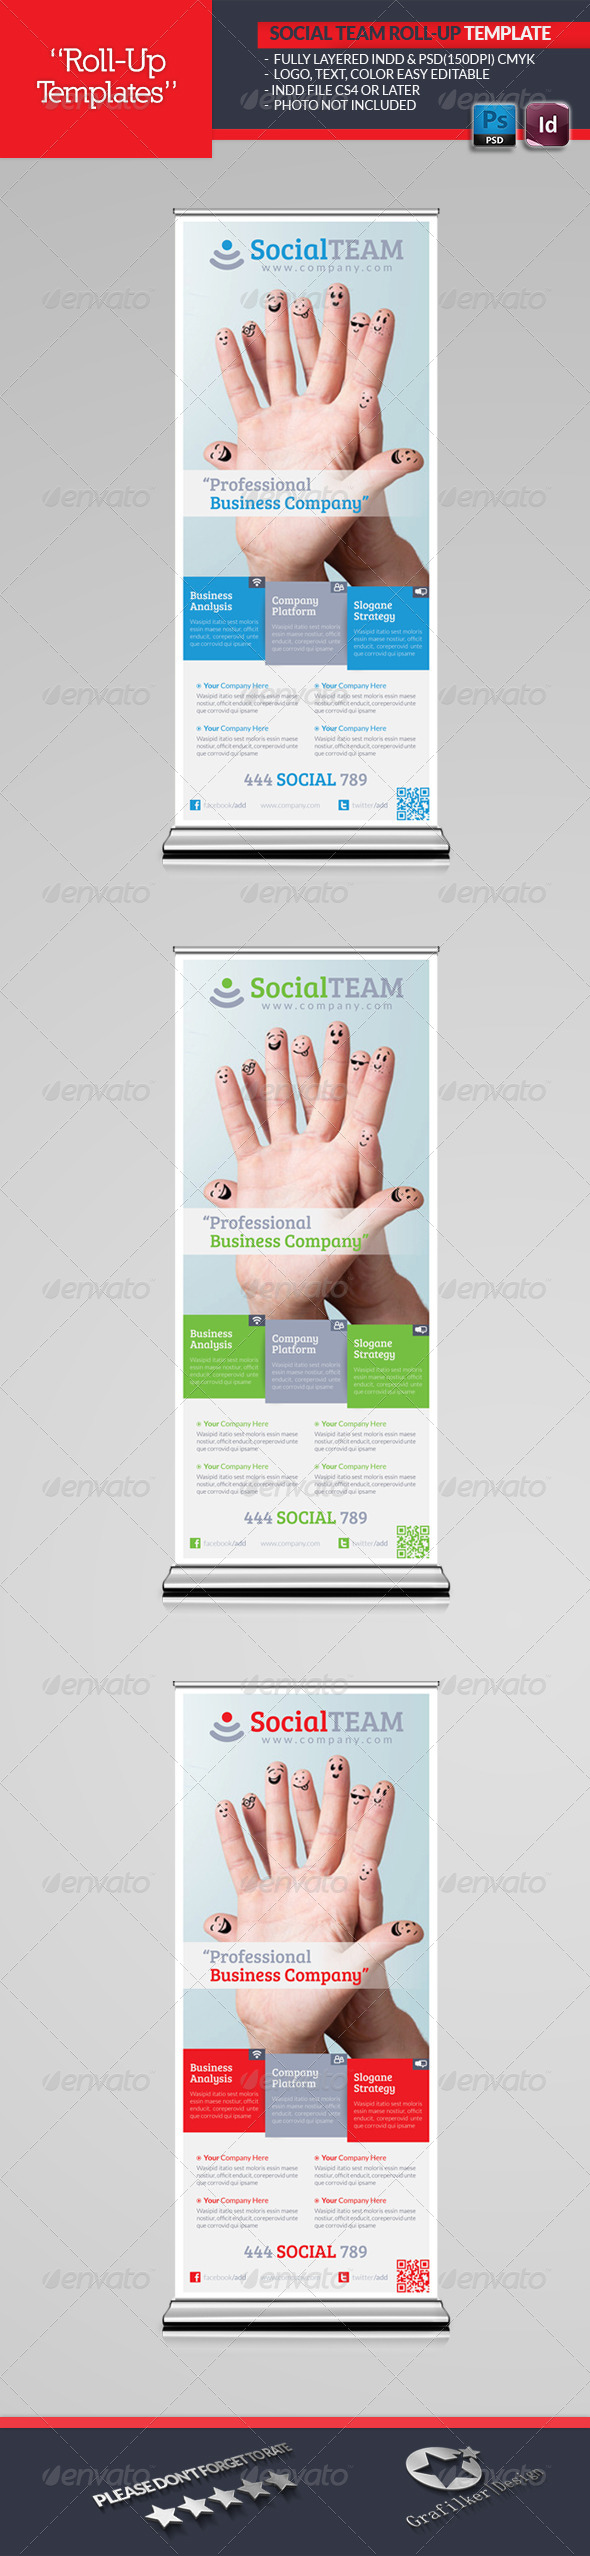 Social Team Roll-Up Template - Signage Print Templates